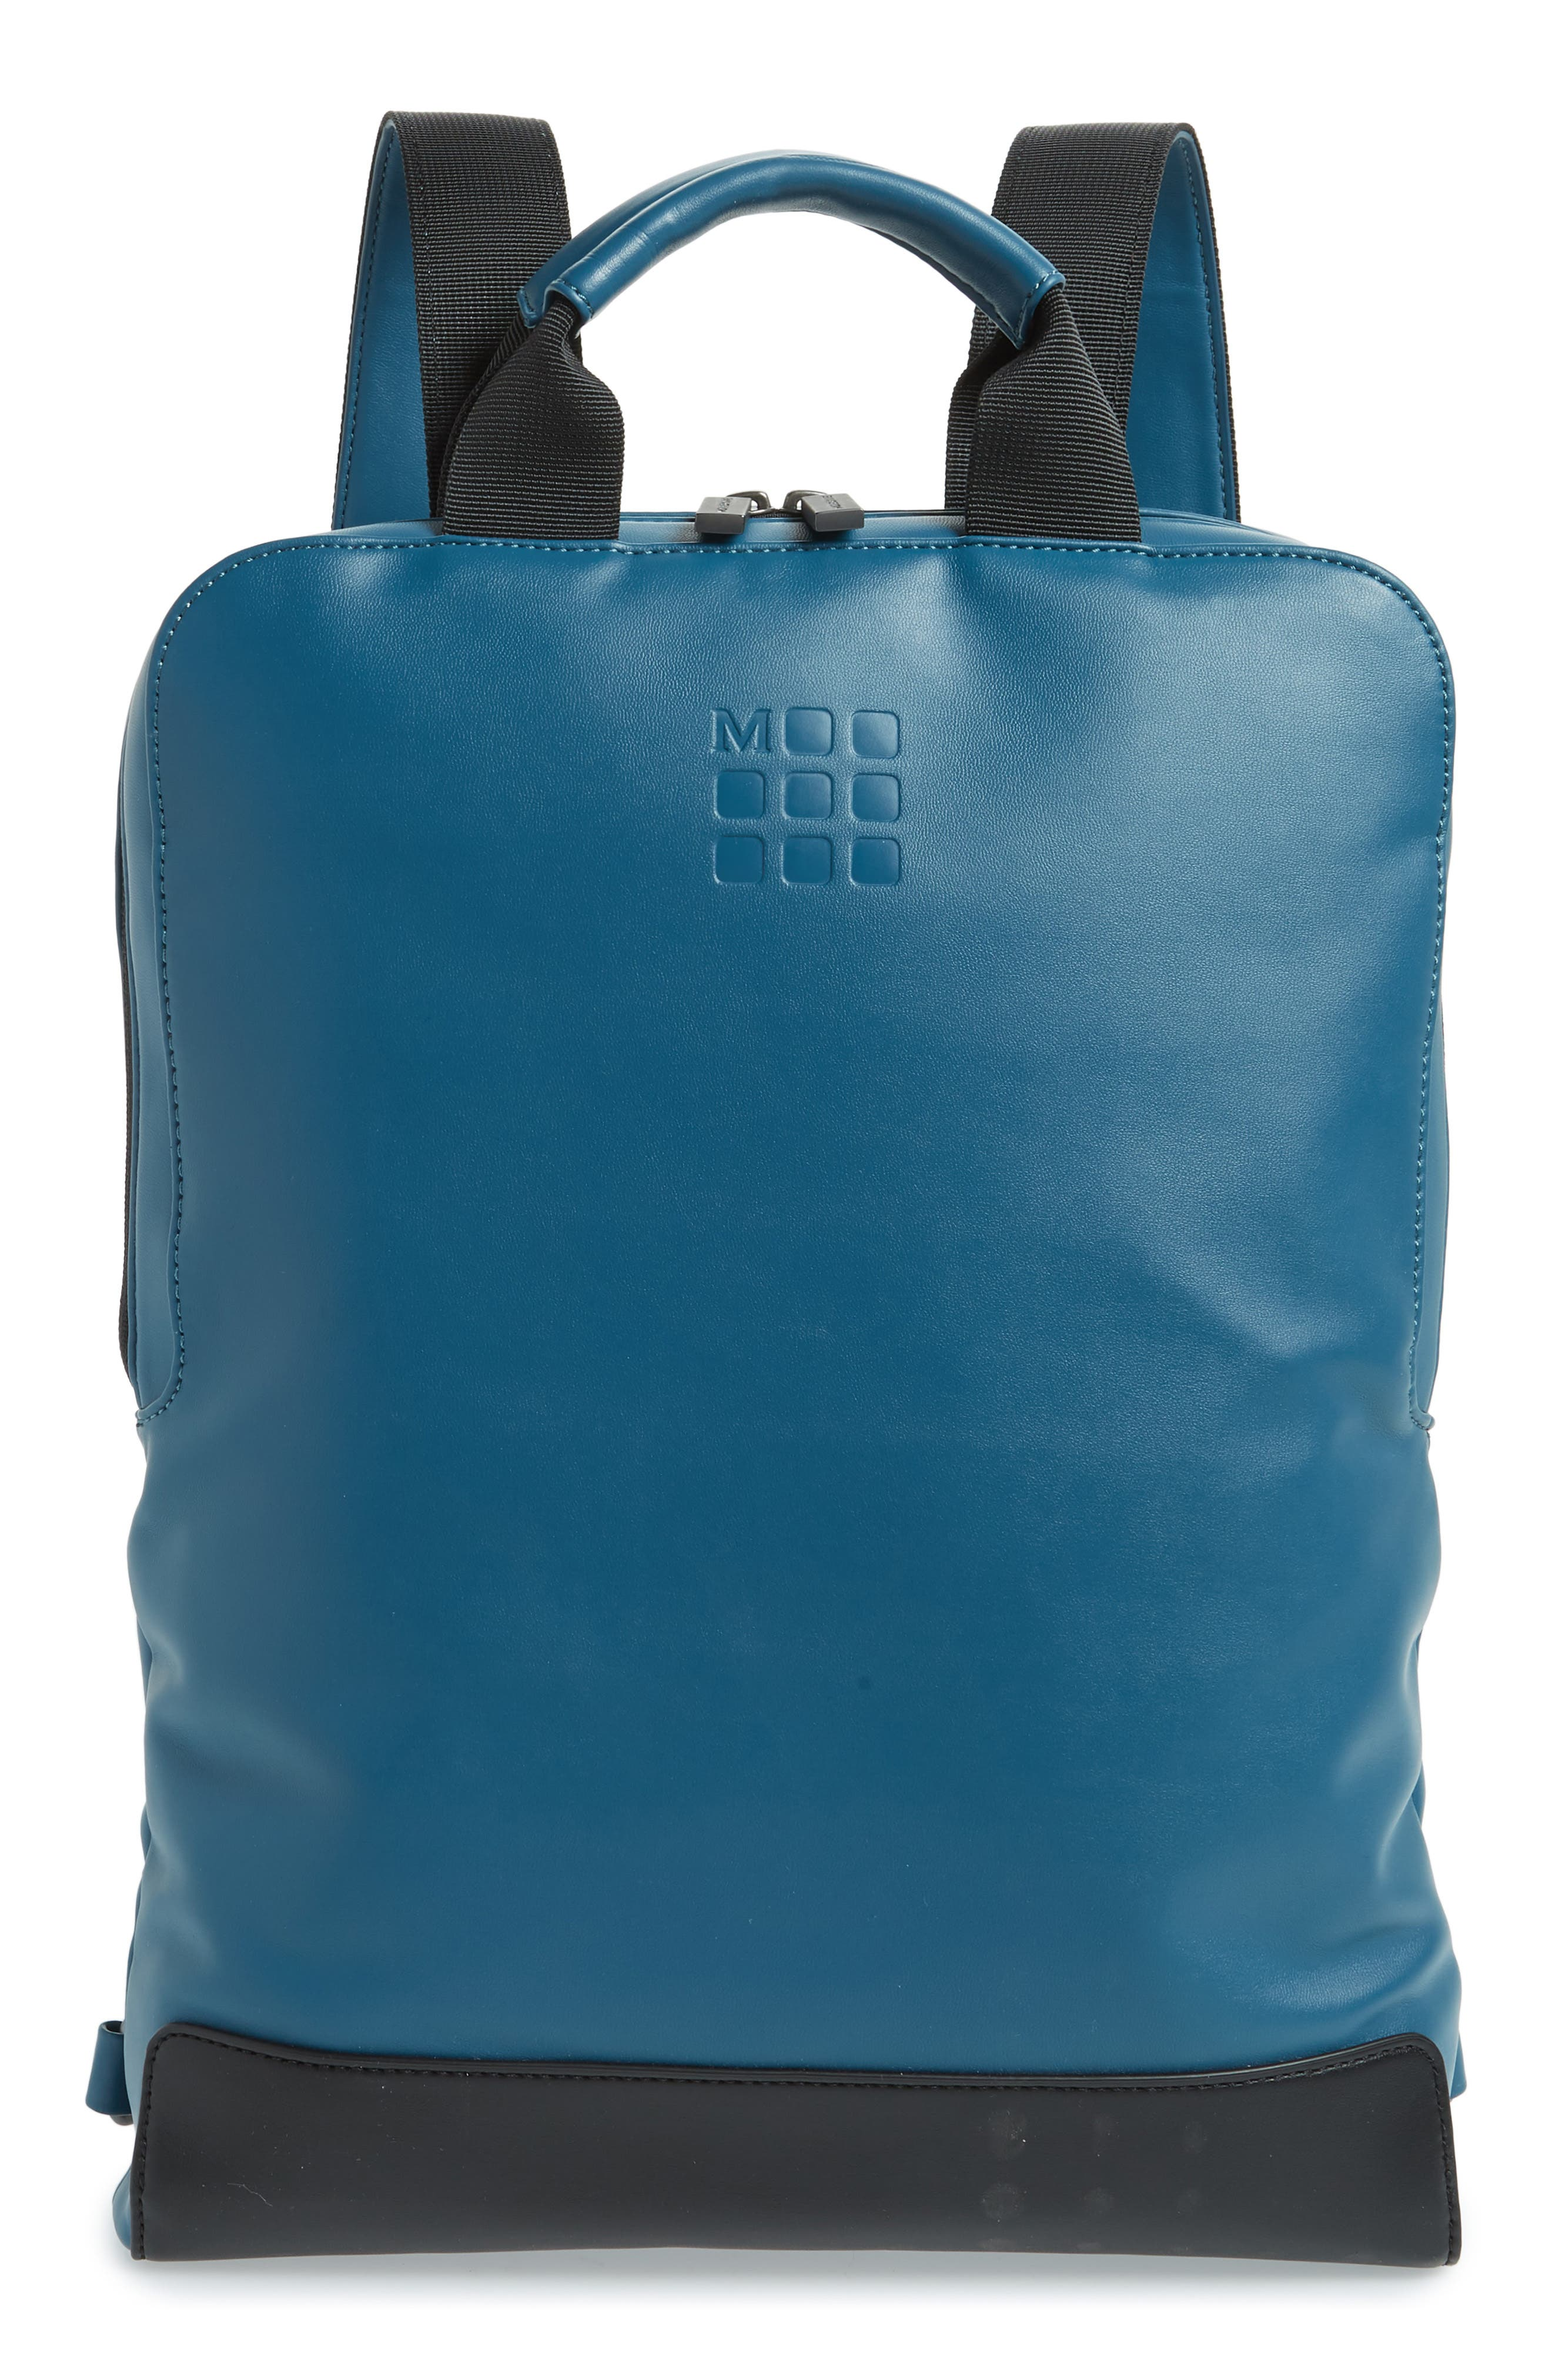 ID Vertical Device Bag,                             Main thumbnail 1, color,                             Steel Blue